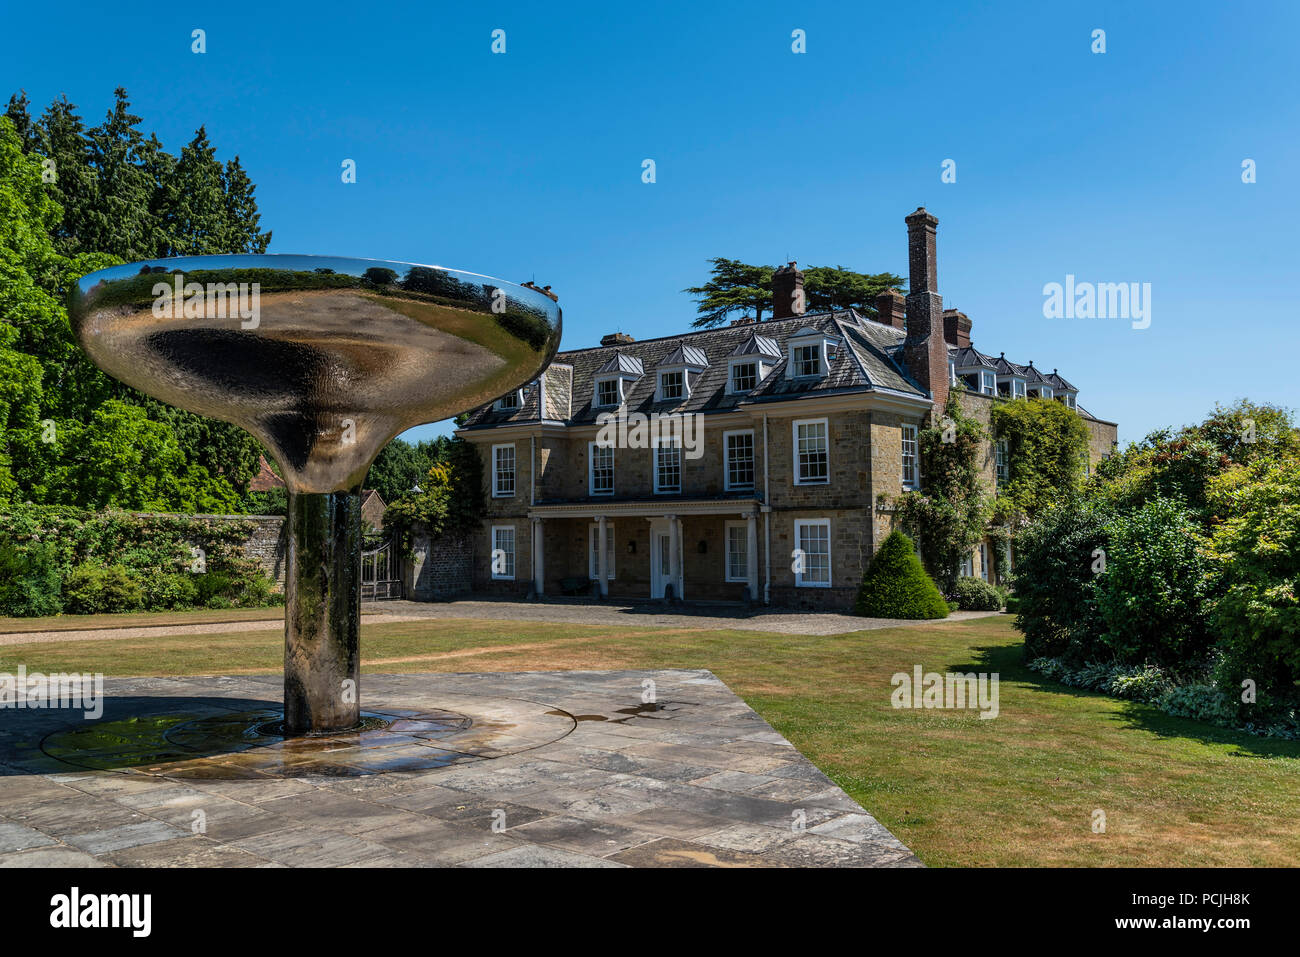 Woolbeding with Unusual Water Feature - Stock Image